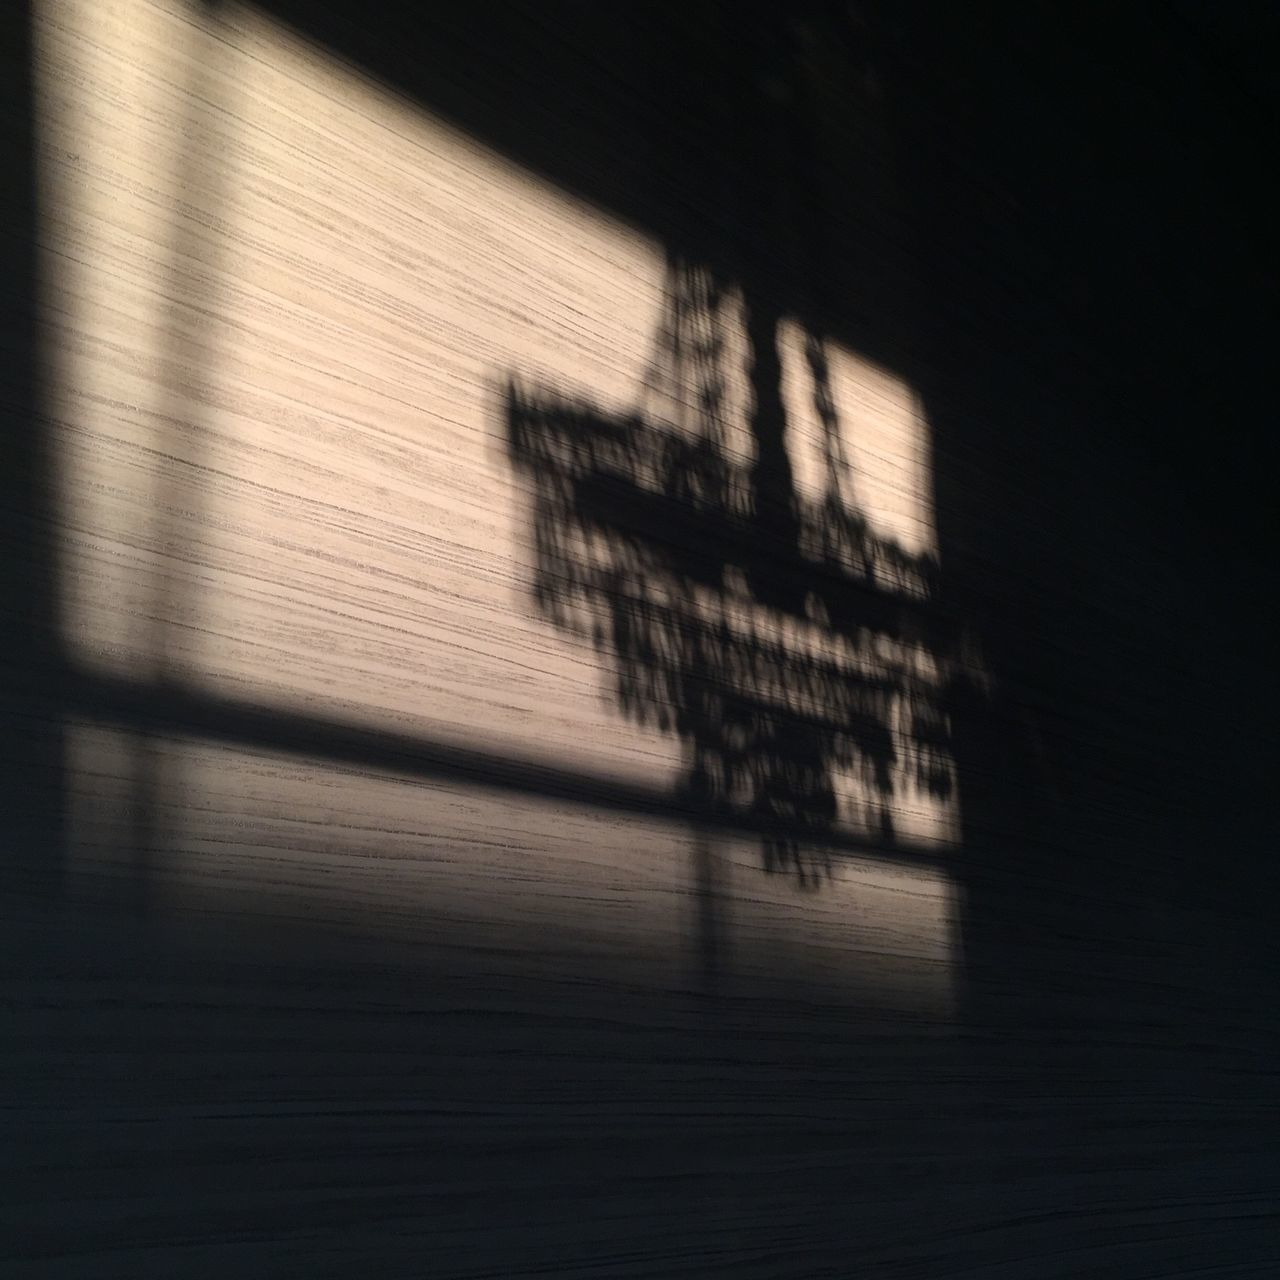 Shadow From Chandelier On Wall